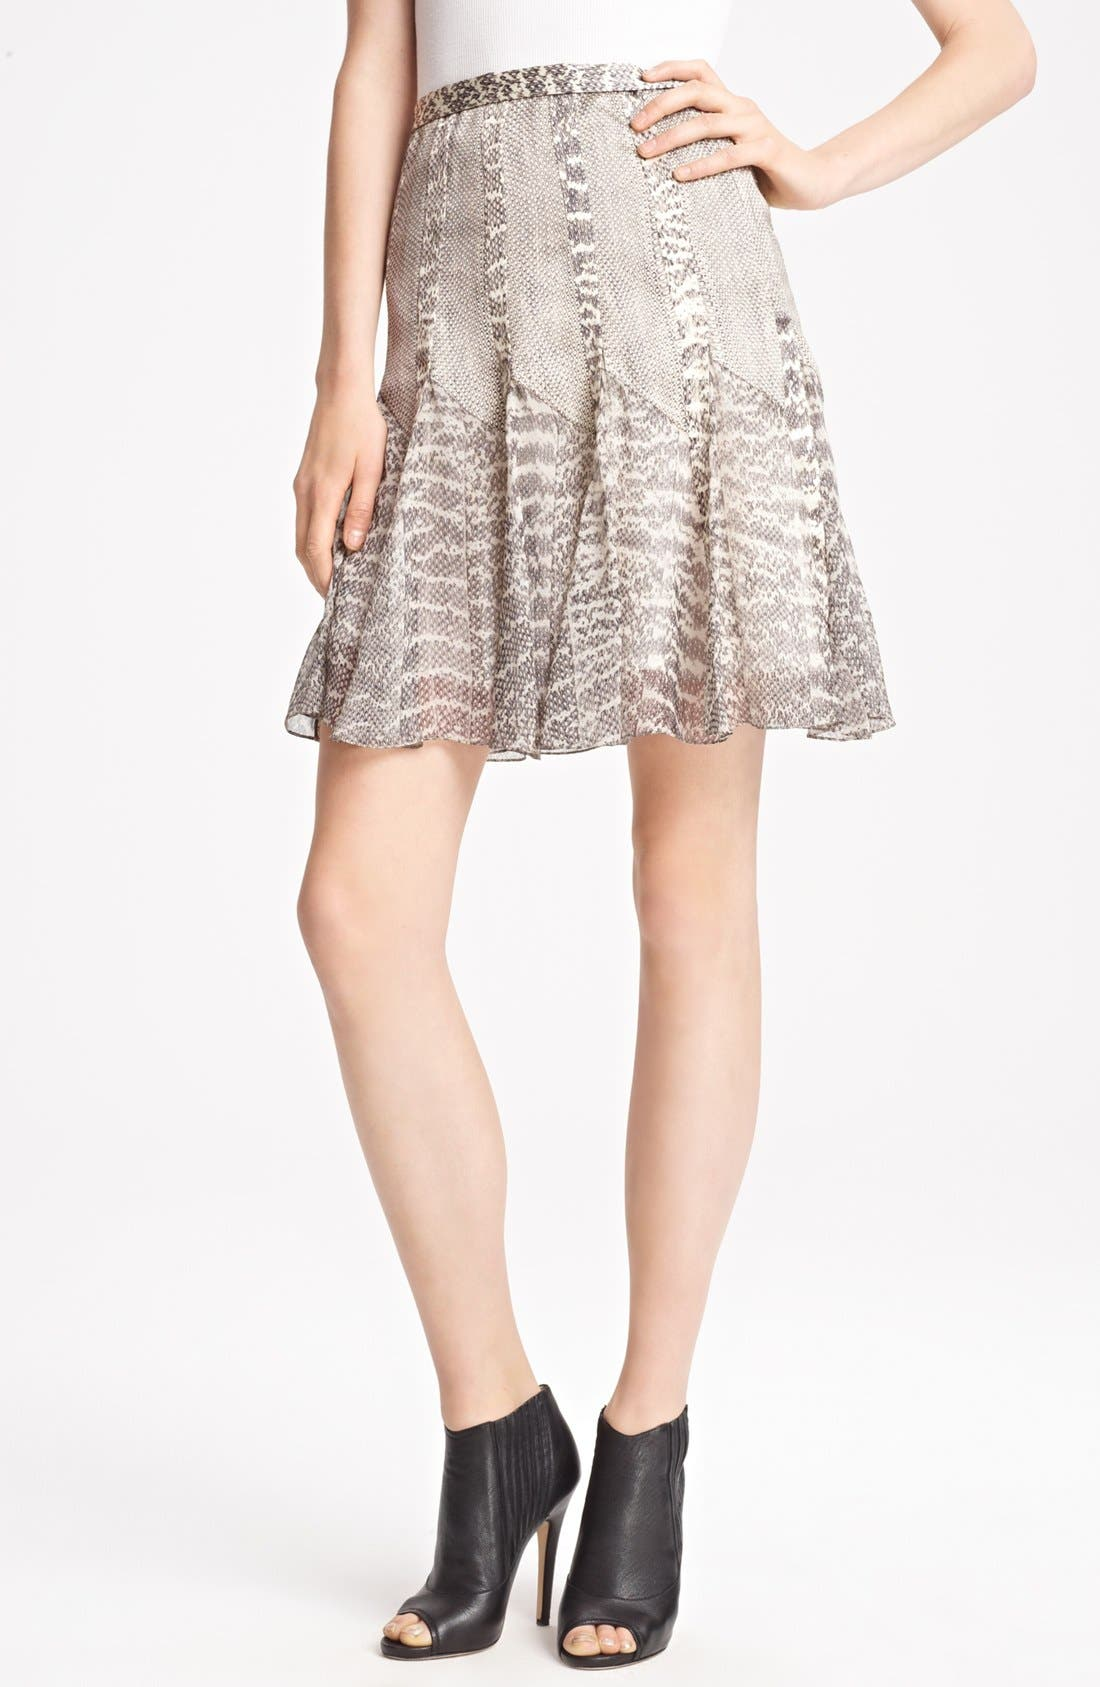 Alternate Image 1 Selected - Jason Wu Snakeskin Print Satin & Chiffon Skirt